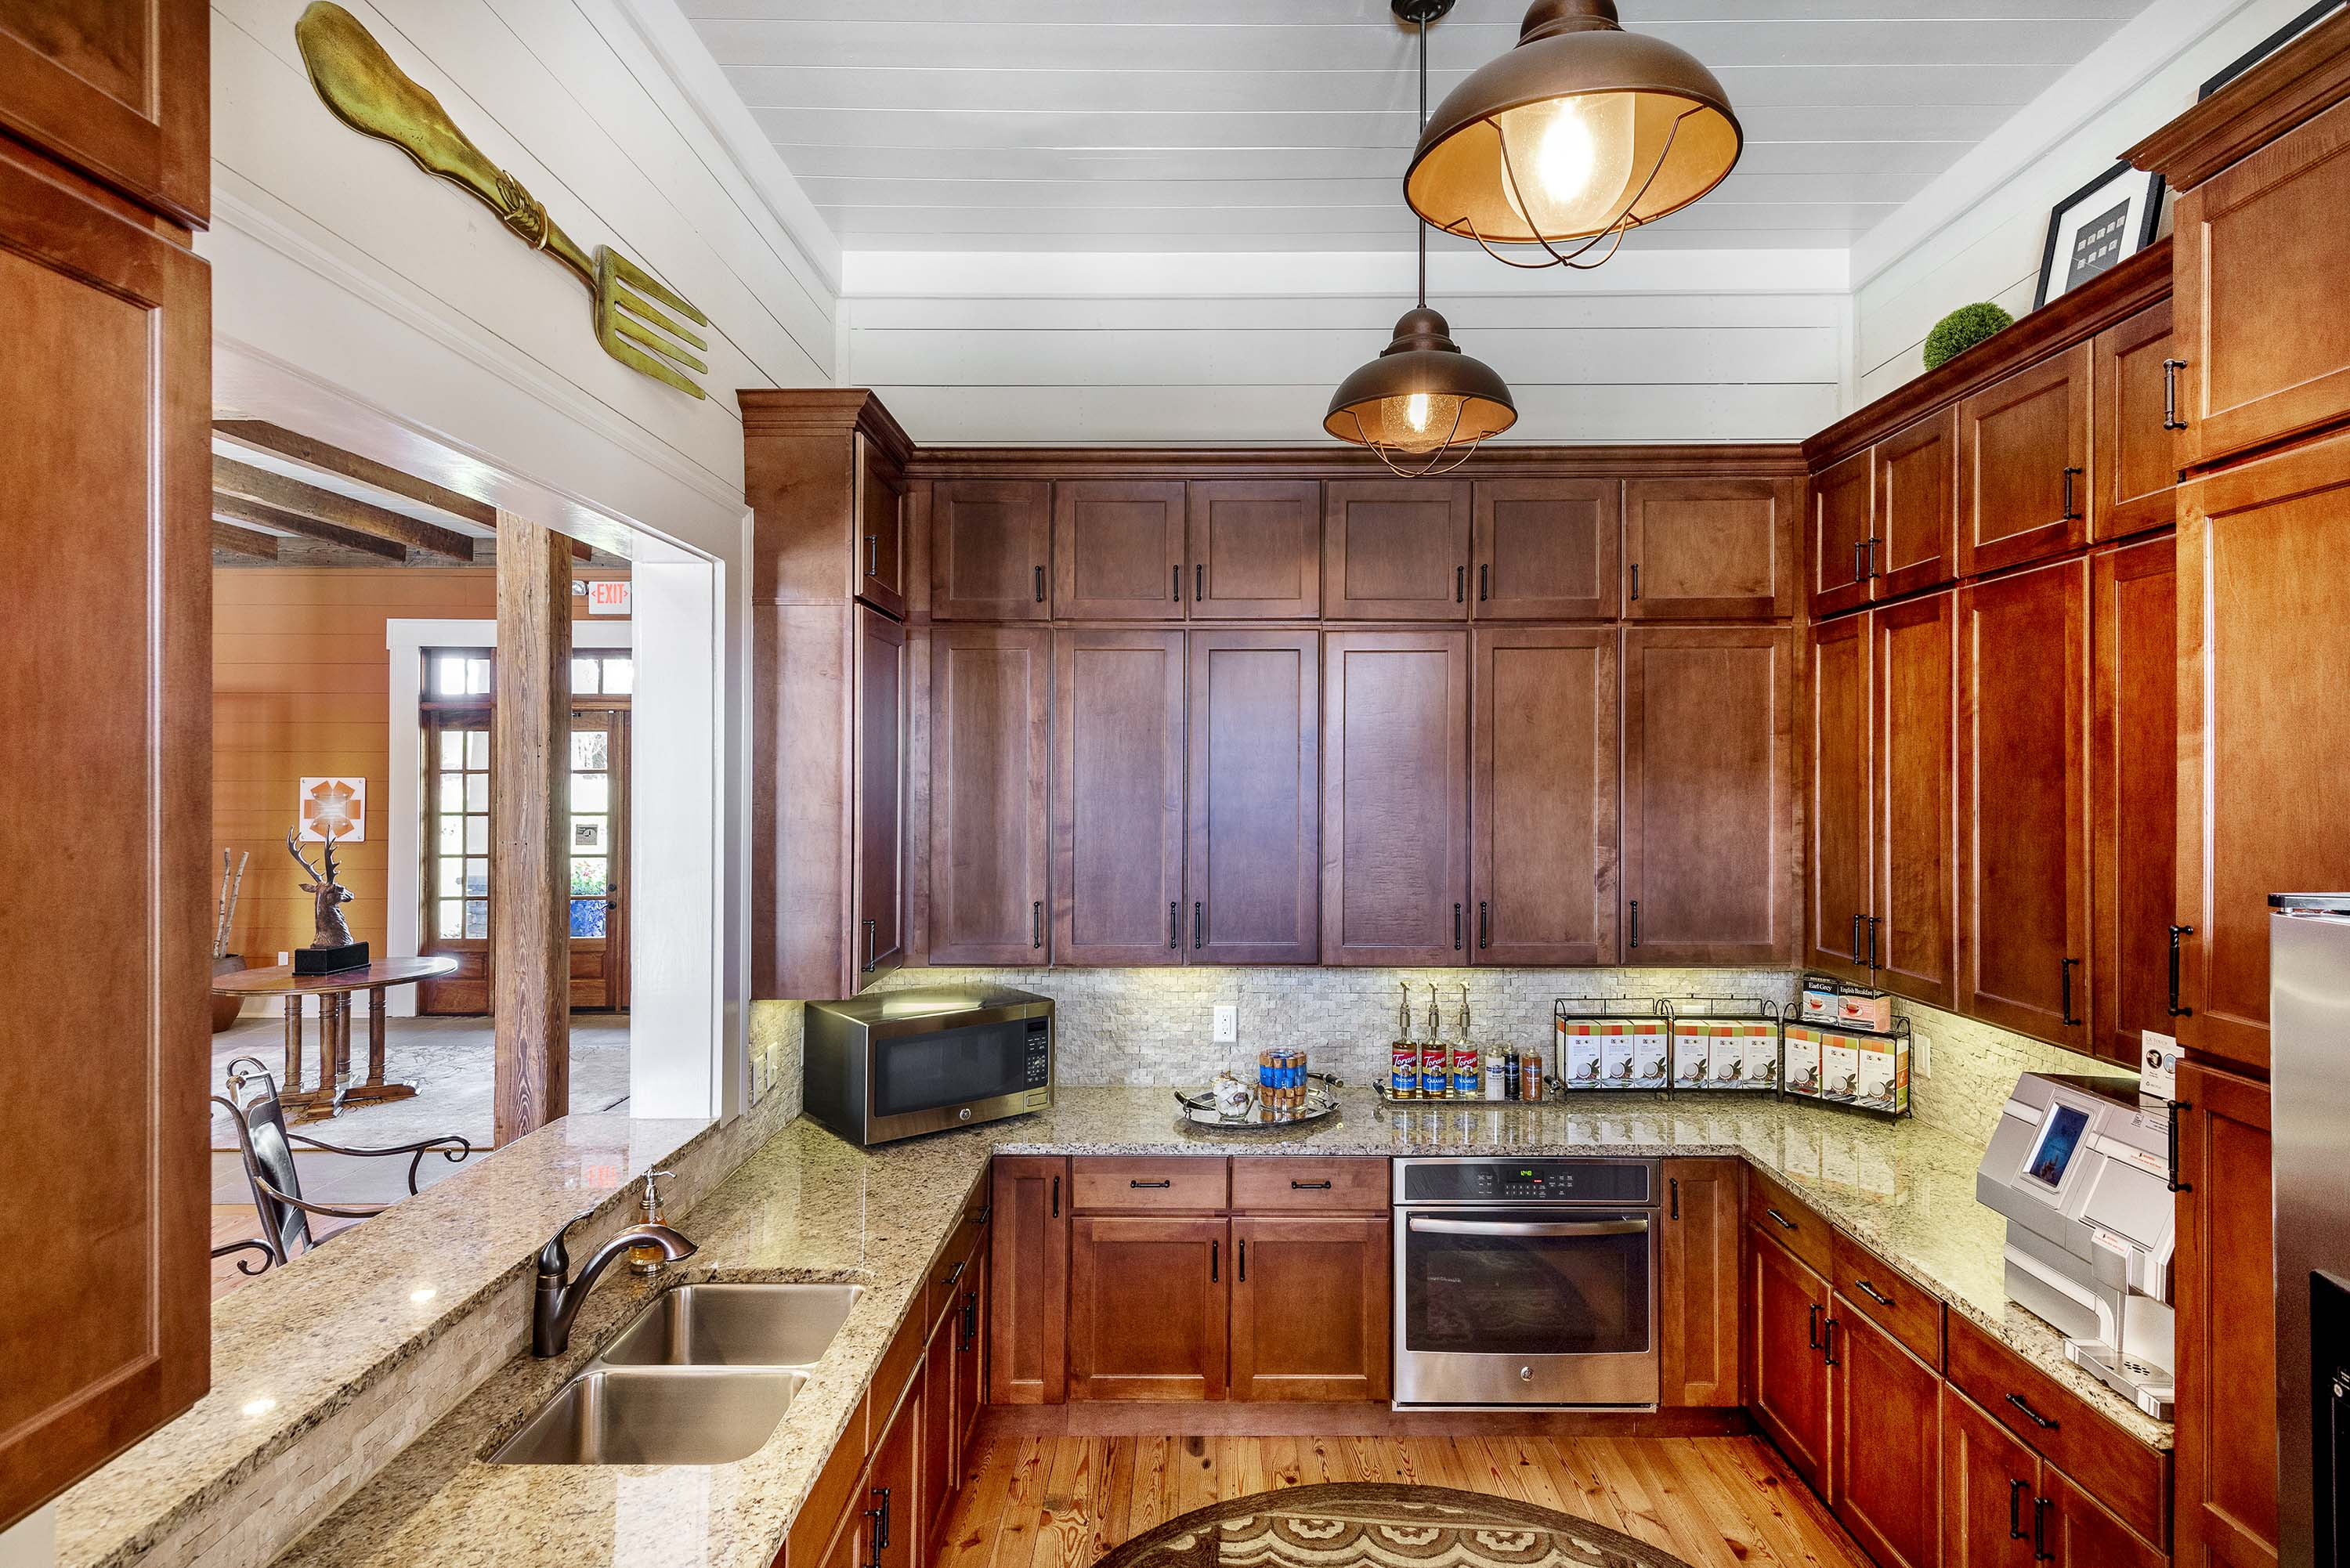 Apartment-homes-home-communities-kitchen